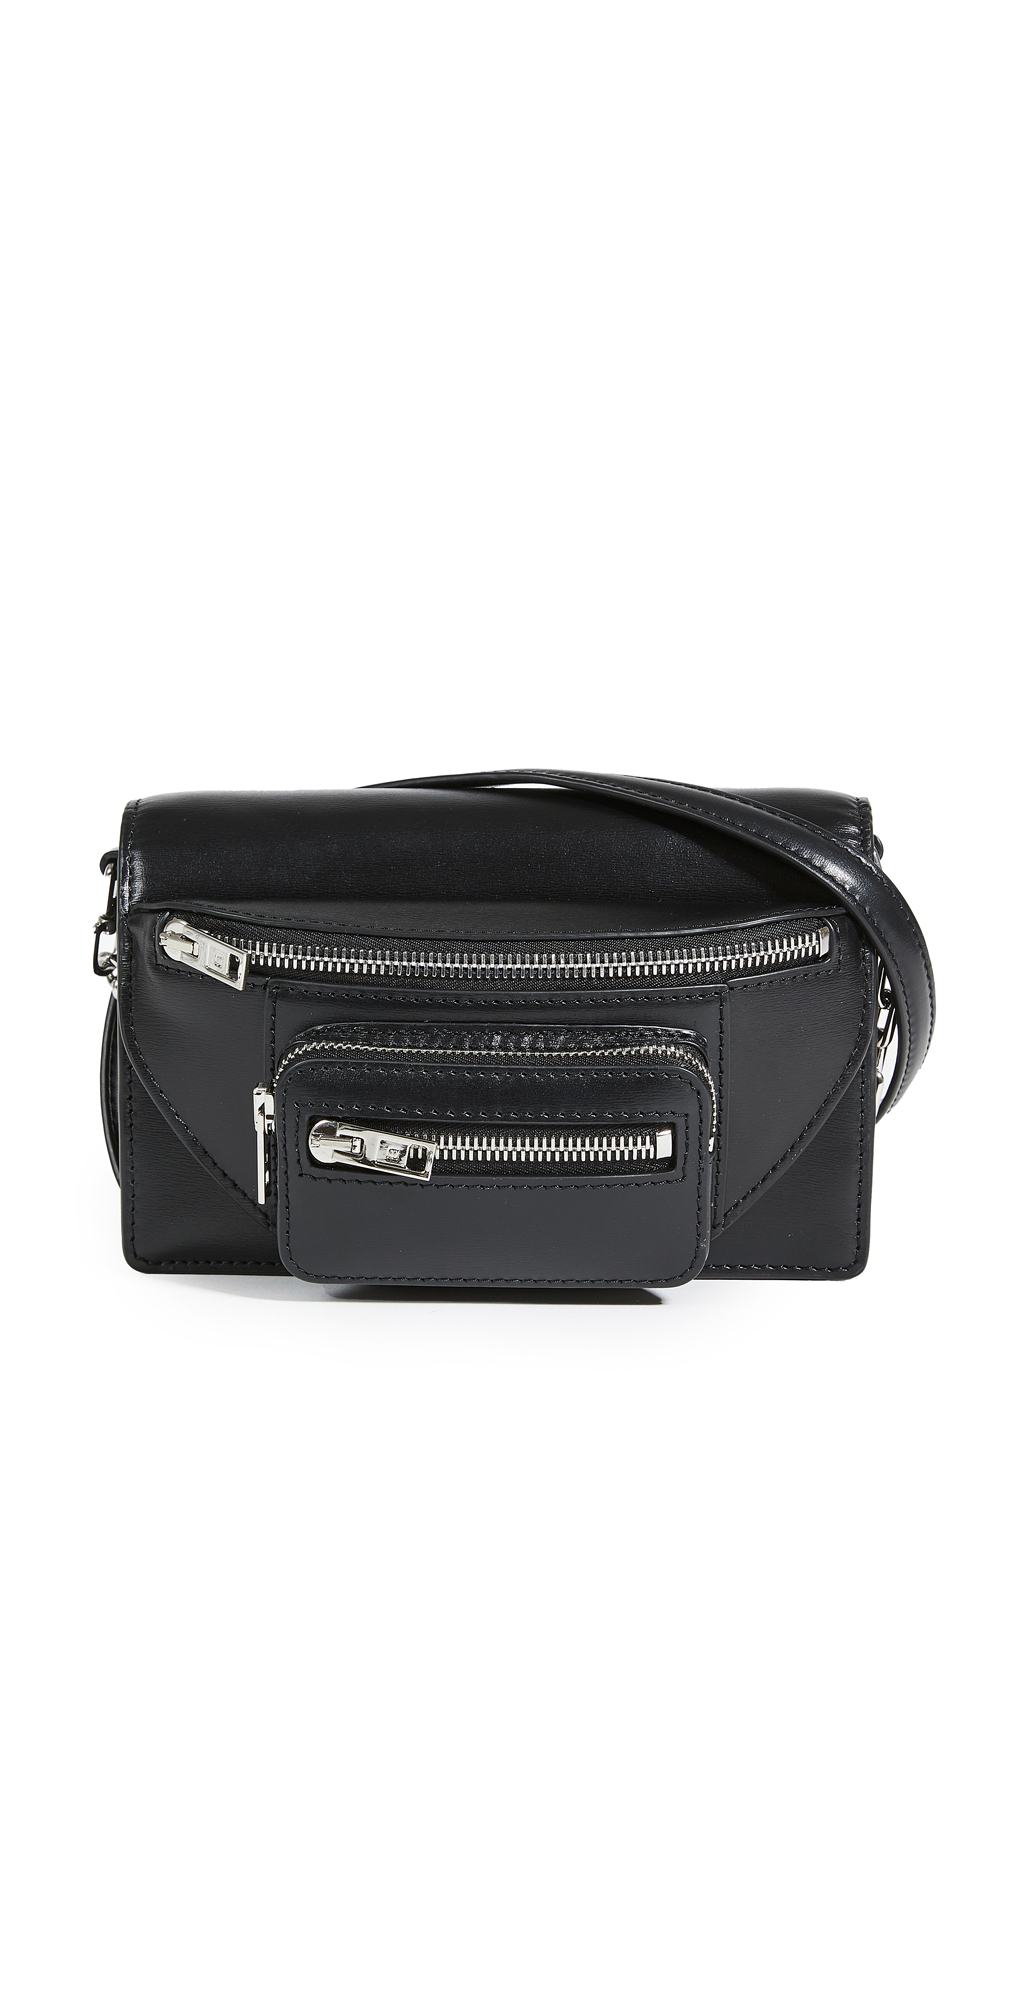 Alexander Wang Attica Small Crossbody Multi Carry Bag